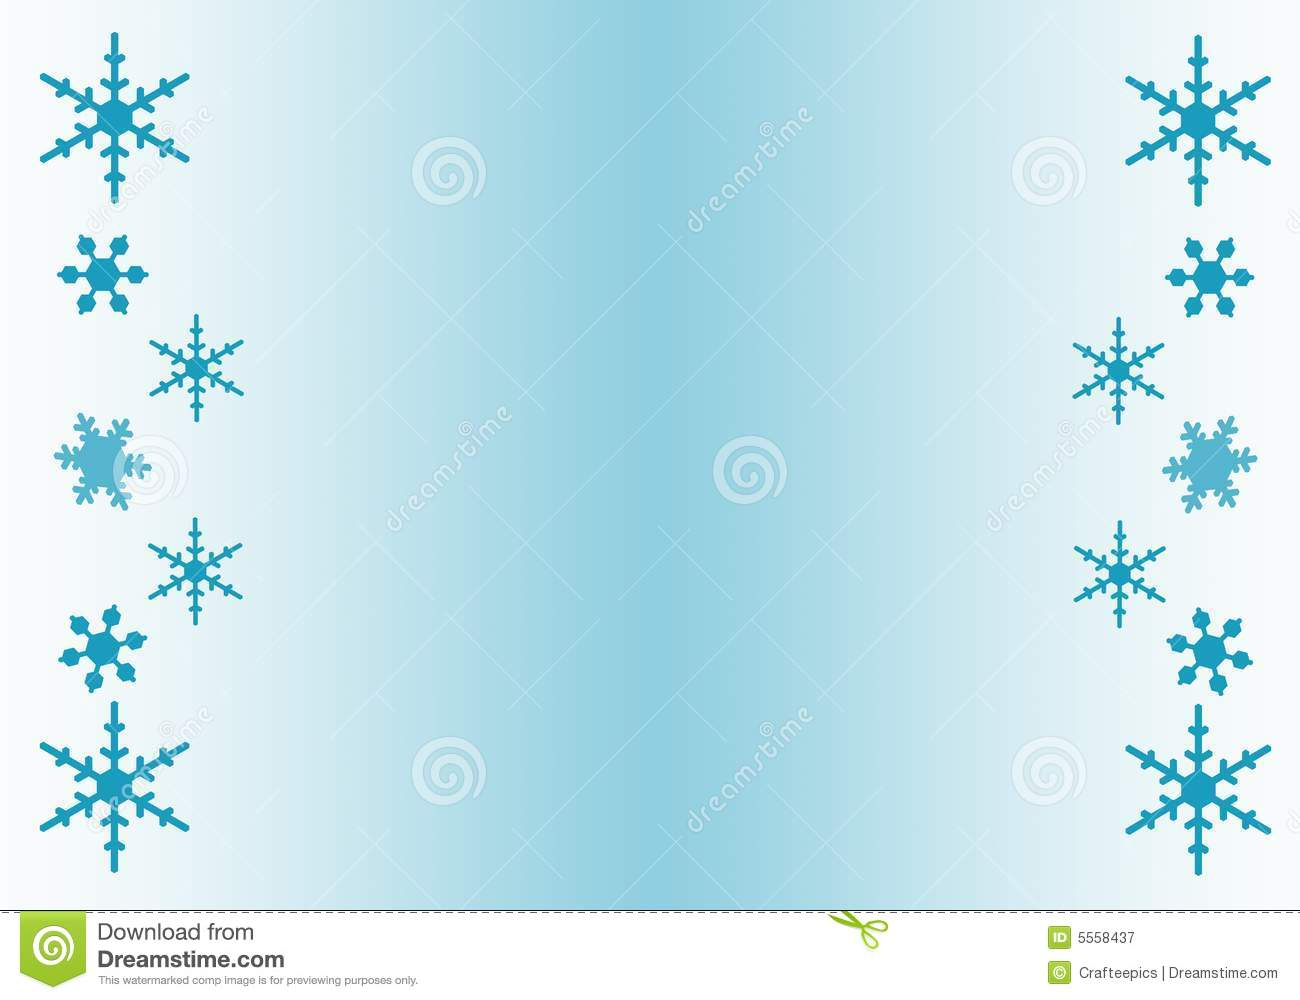 Free Snowflake Border Clipart & Snowflake Border Clip Art Images.